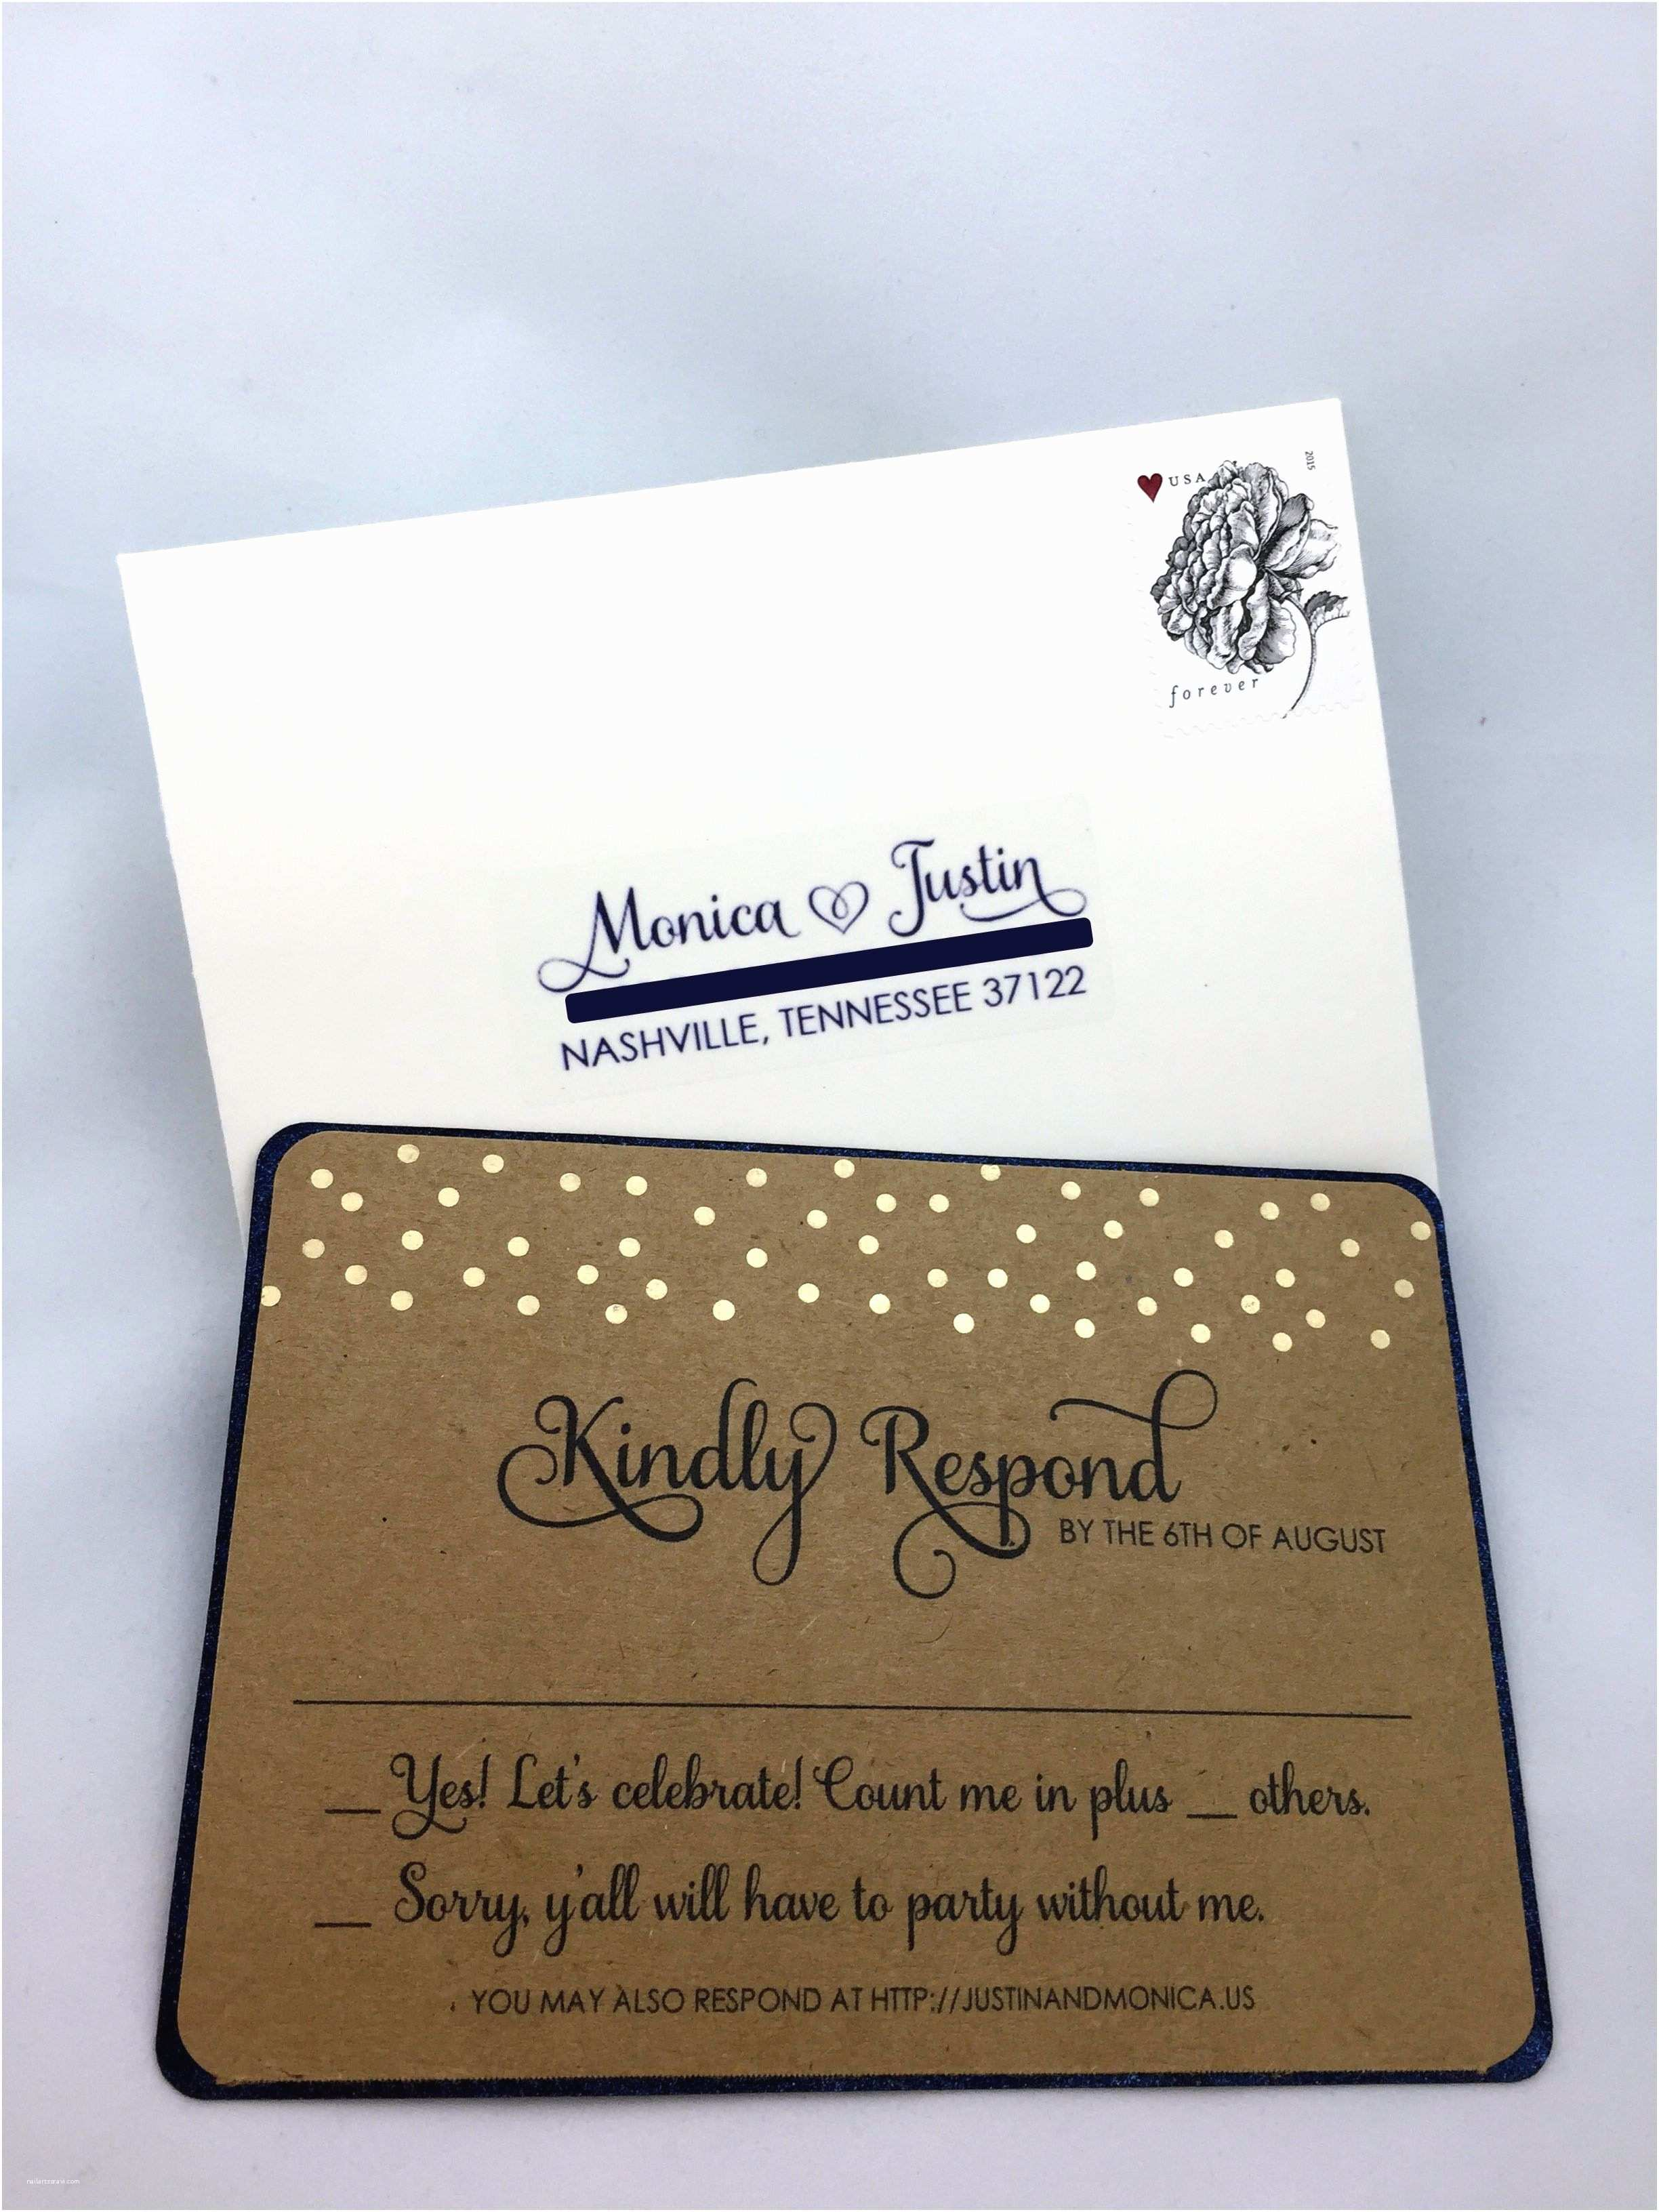 Wedding Invitations with Rsvp Cards Included Invitations with Response Cards Wedding Invitations with